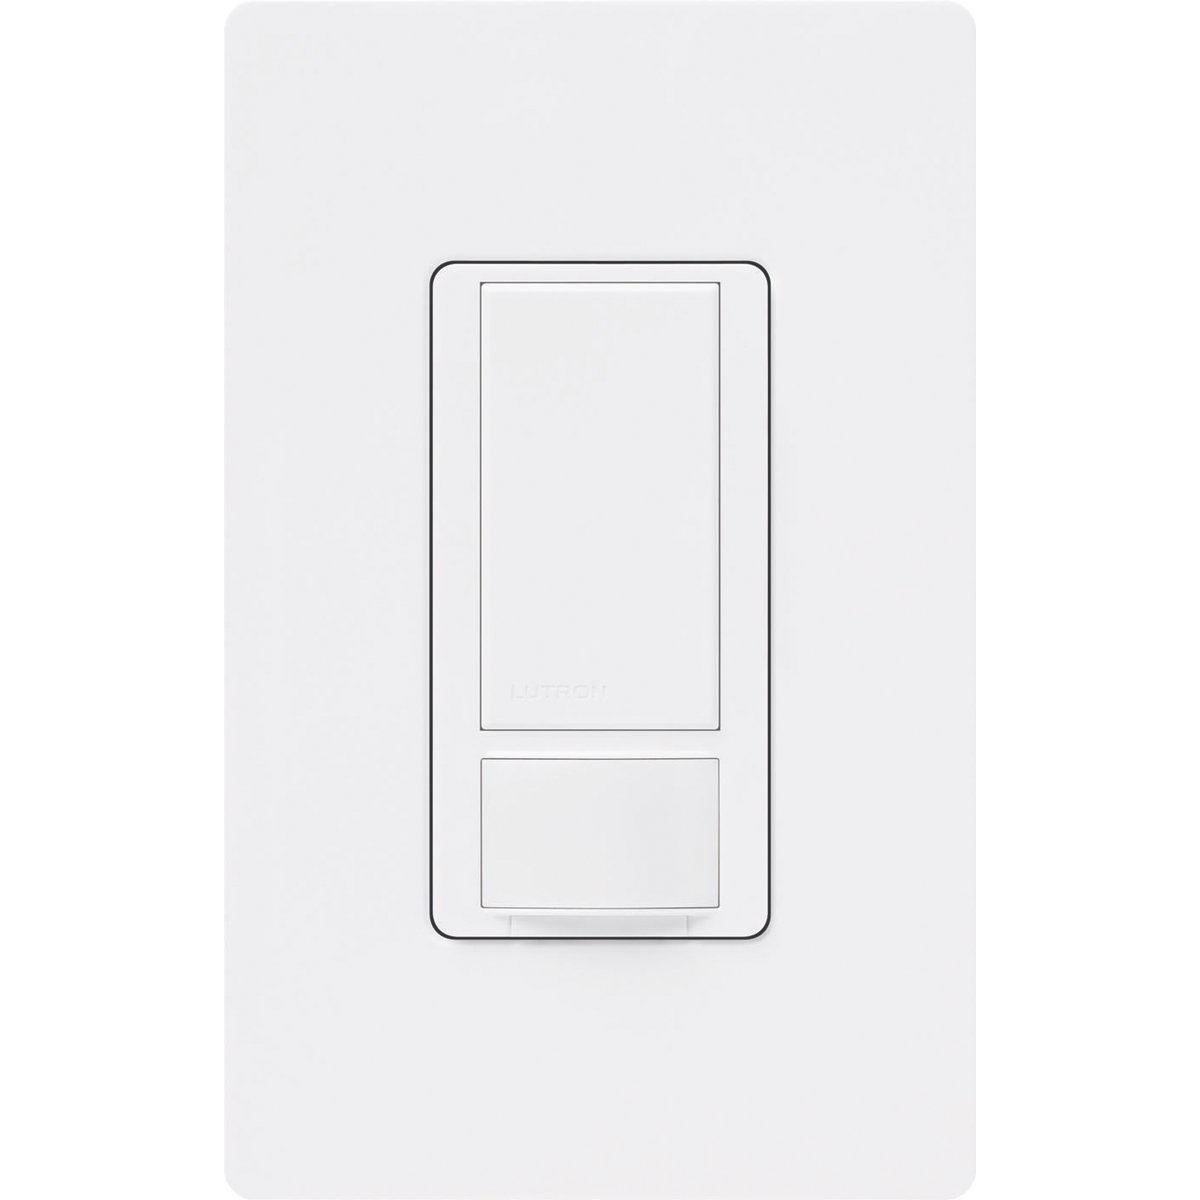 51QGQphLurL._SL1200_ lutron lutron ms ops6m2 dv wh maestro 6 amp multi location dual ms-ops5mh-wh wiring diagram at bayanpartner.co